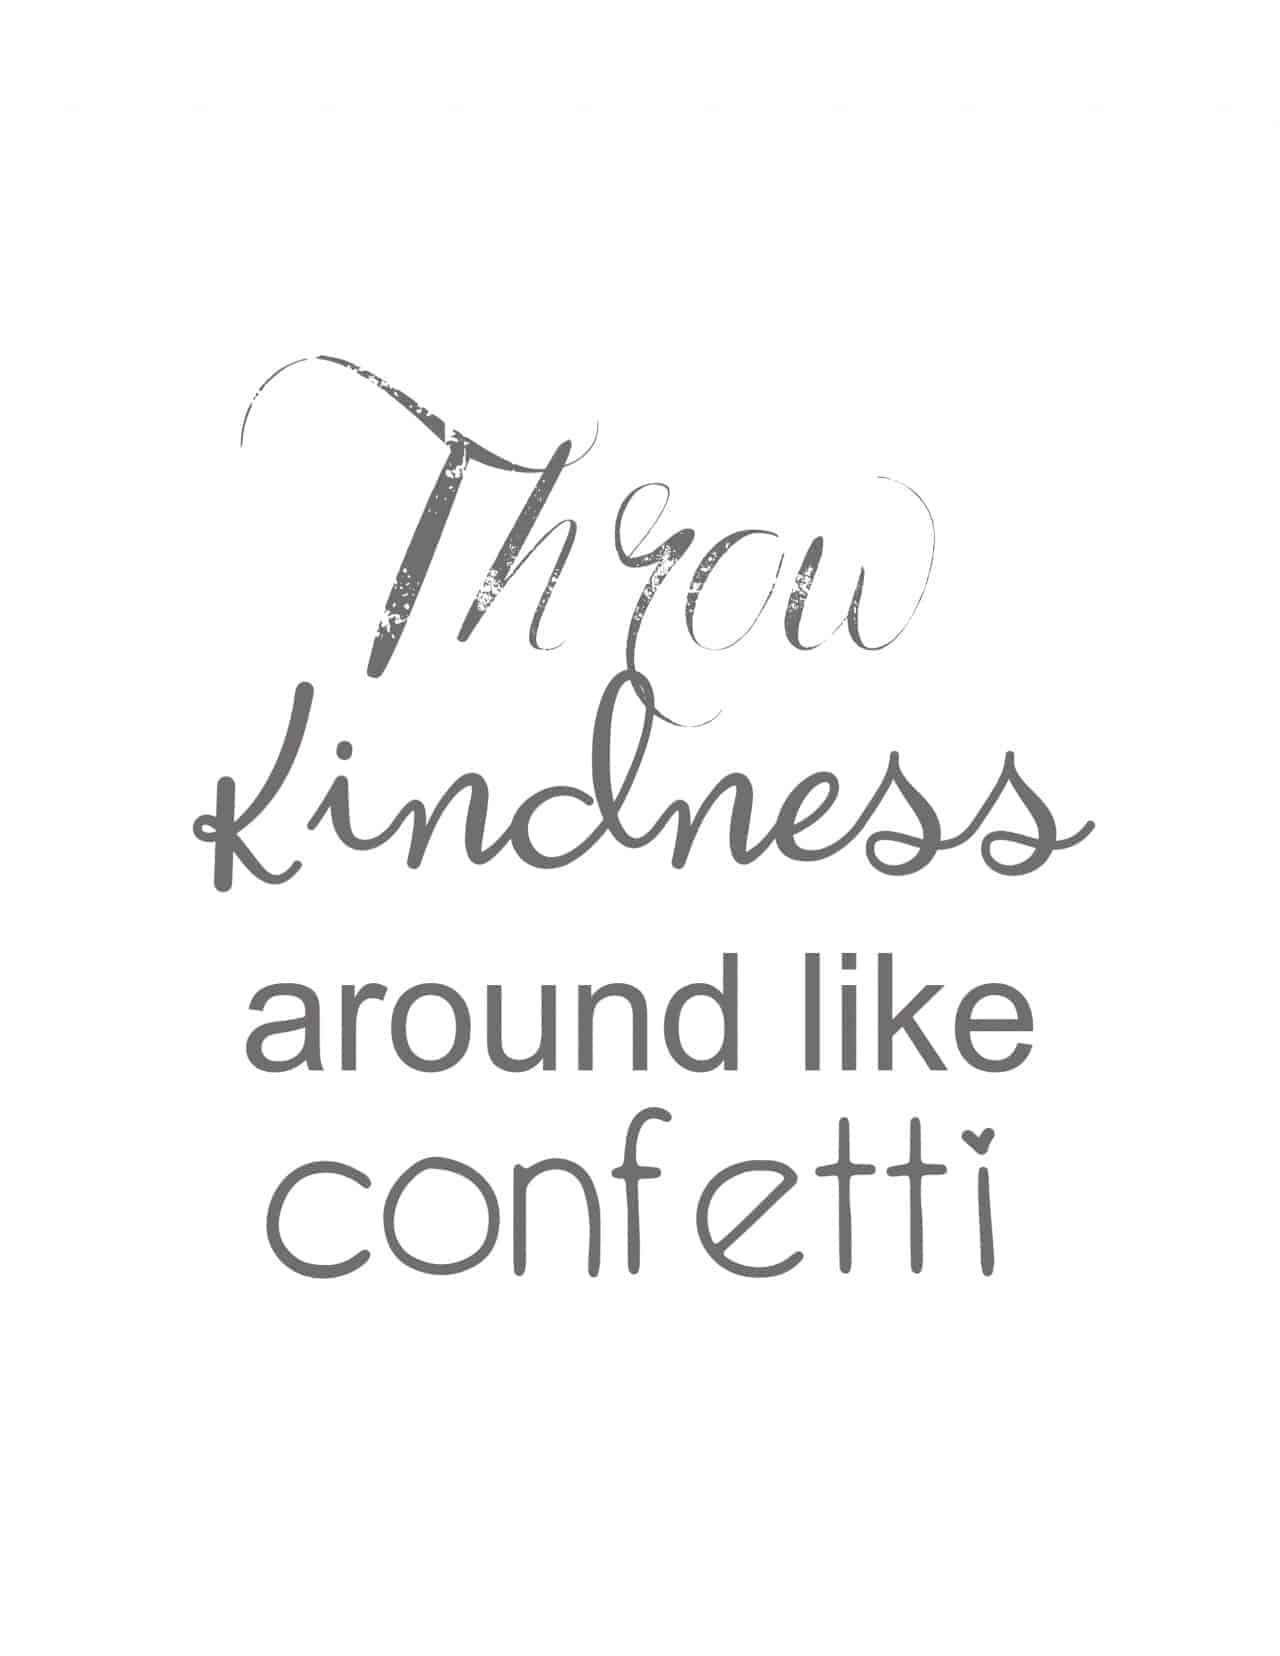 Throw kindness around like confetti with gray lettering and plain white background